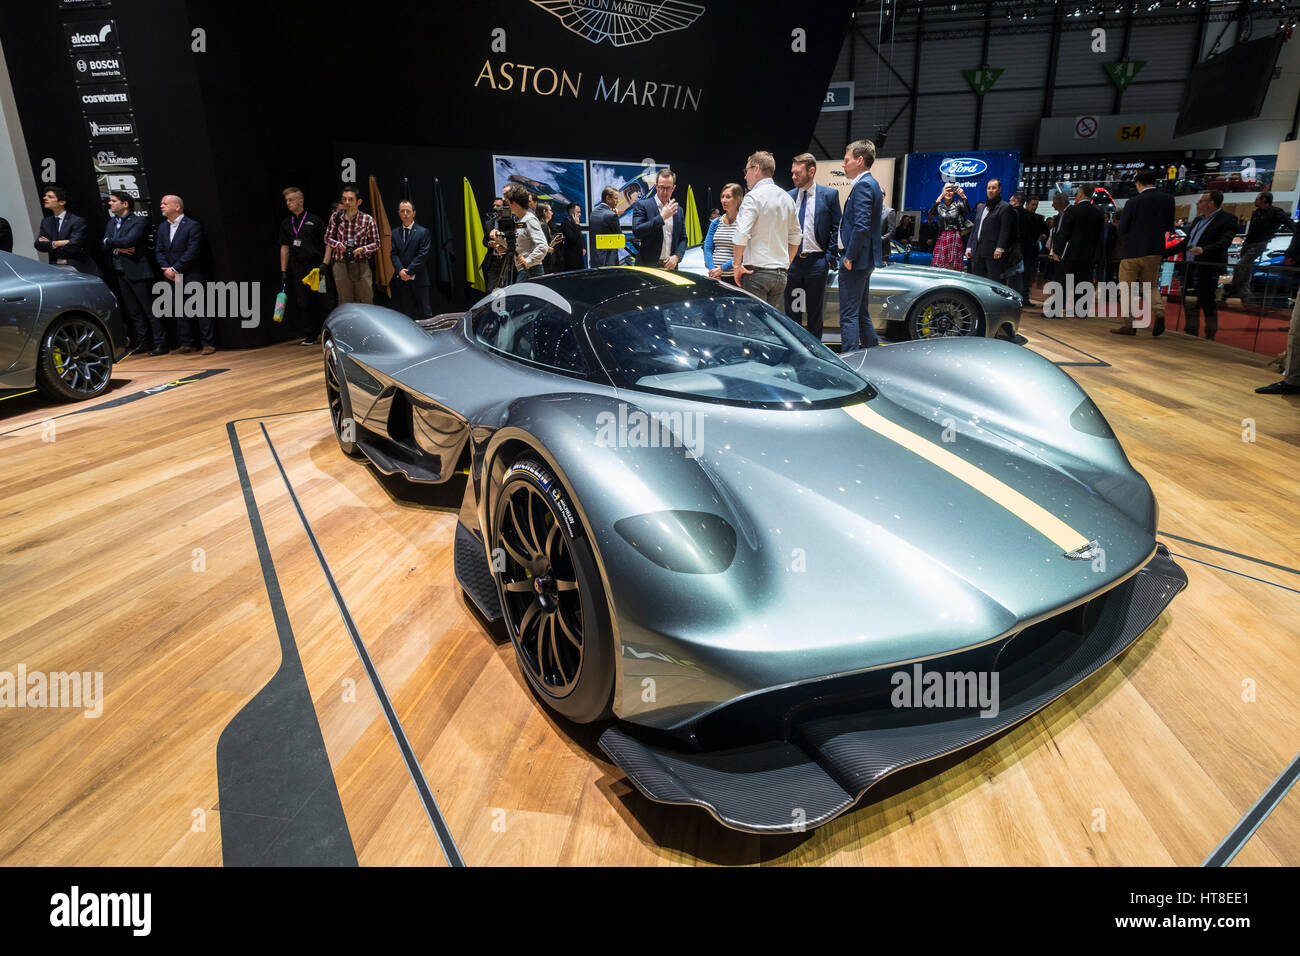 "Welt-Premiere der Supersportwagen Aston Martin AMR ""Walküre"" in Genf International Motor Show 2017 Stockbild"